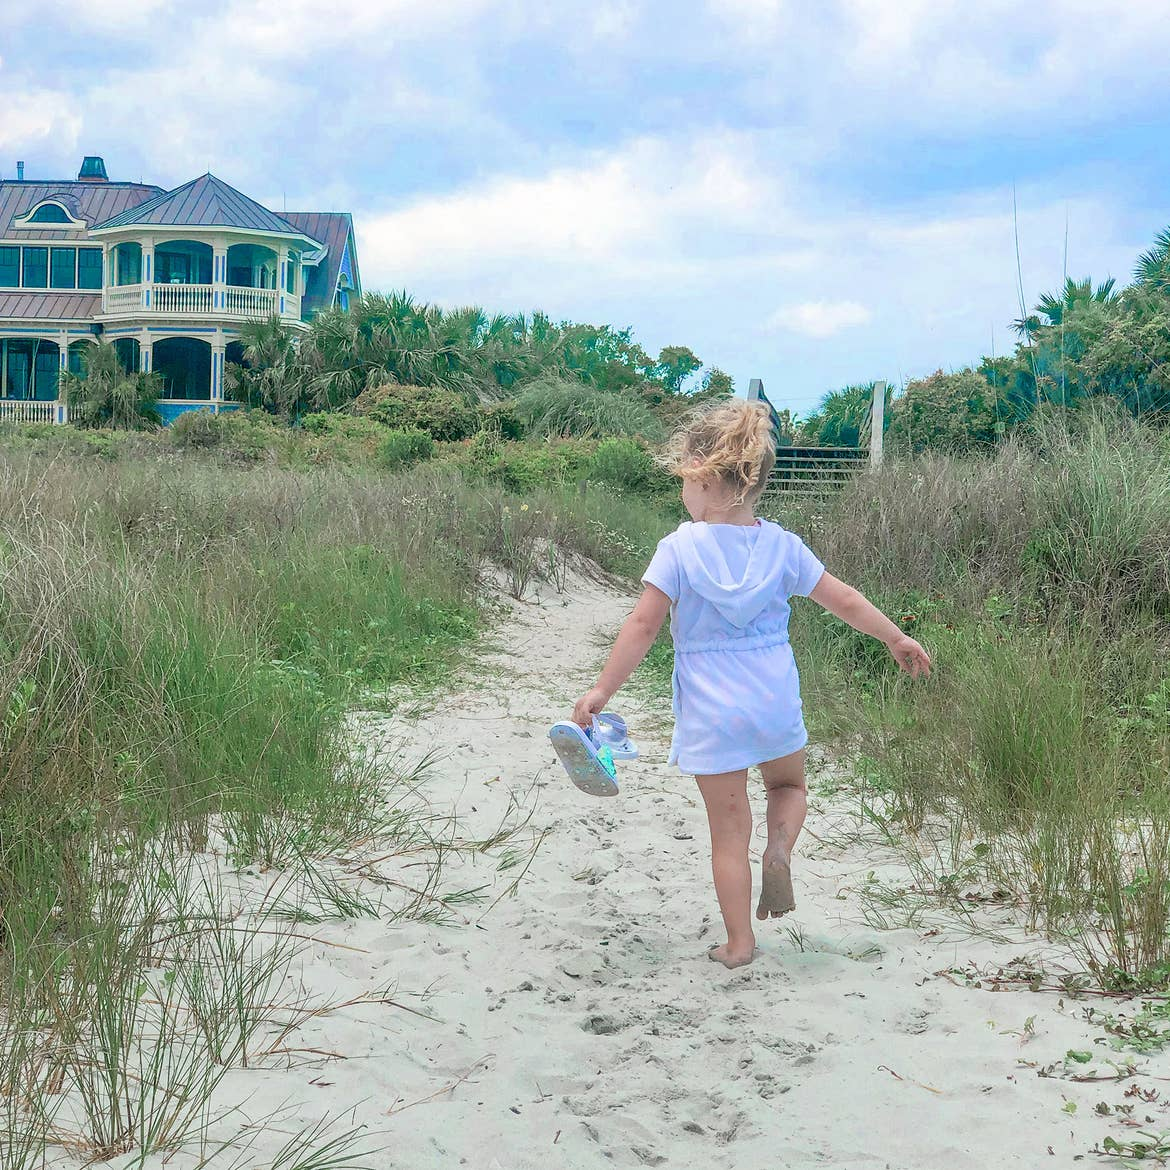 Featured Contributor, Brianna Steele's daughter walks barefoot in the sands towards a beach house in the distance.